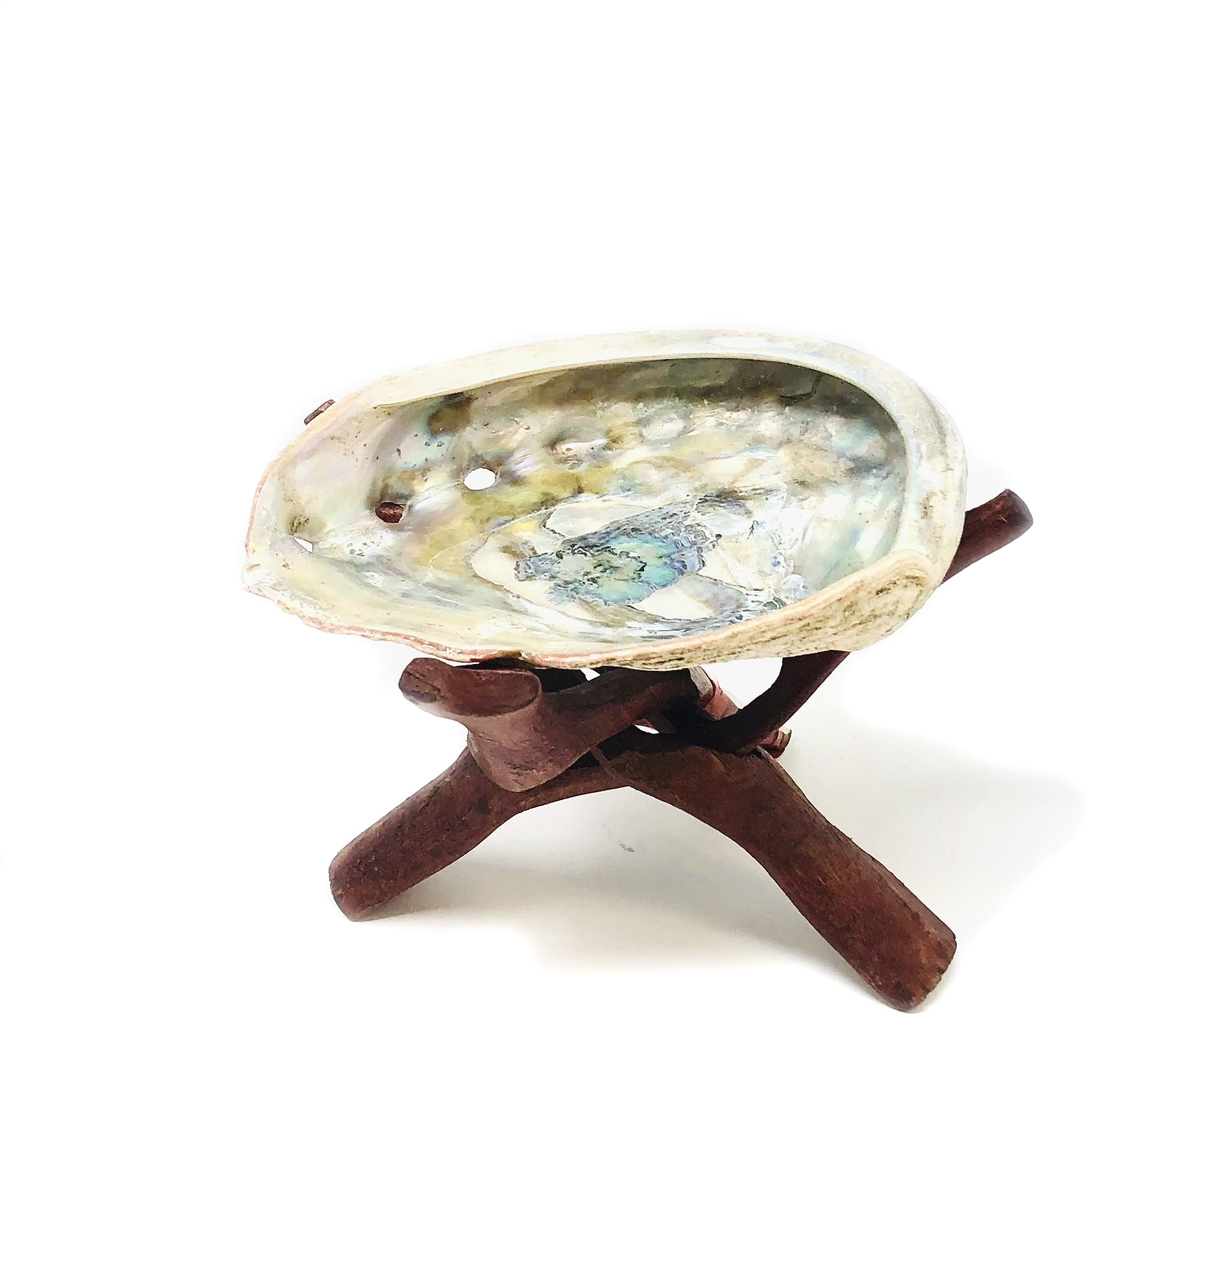 Abalone Shell with Tripod $19.99